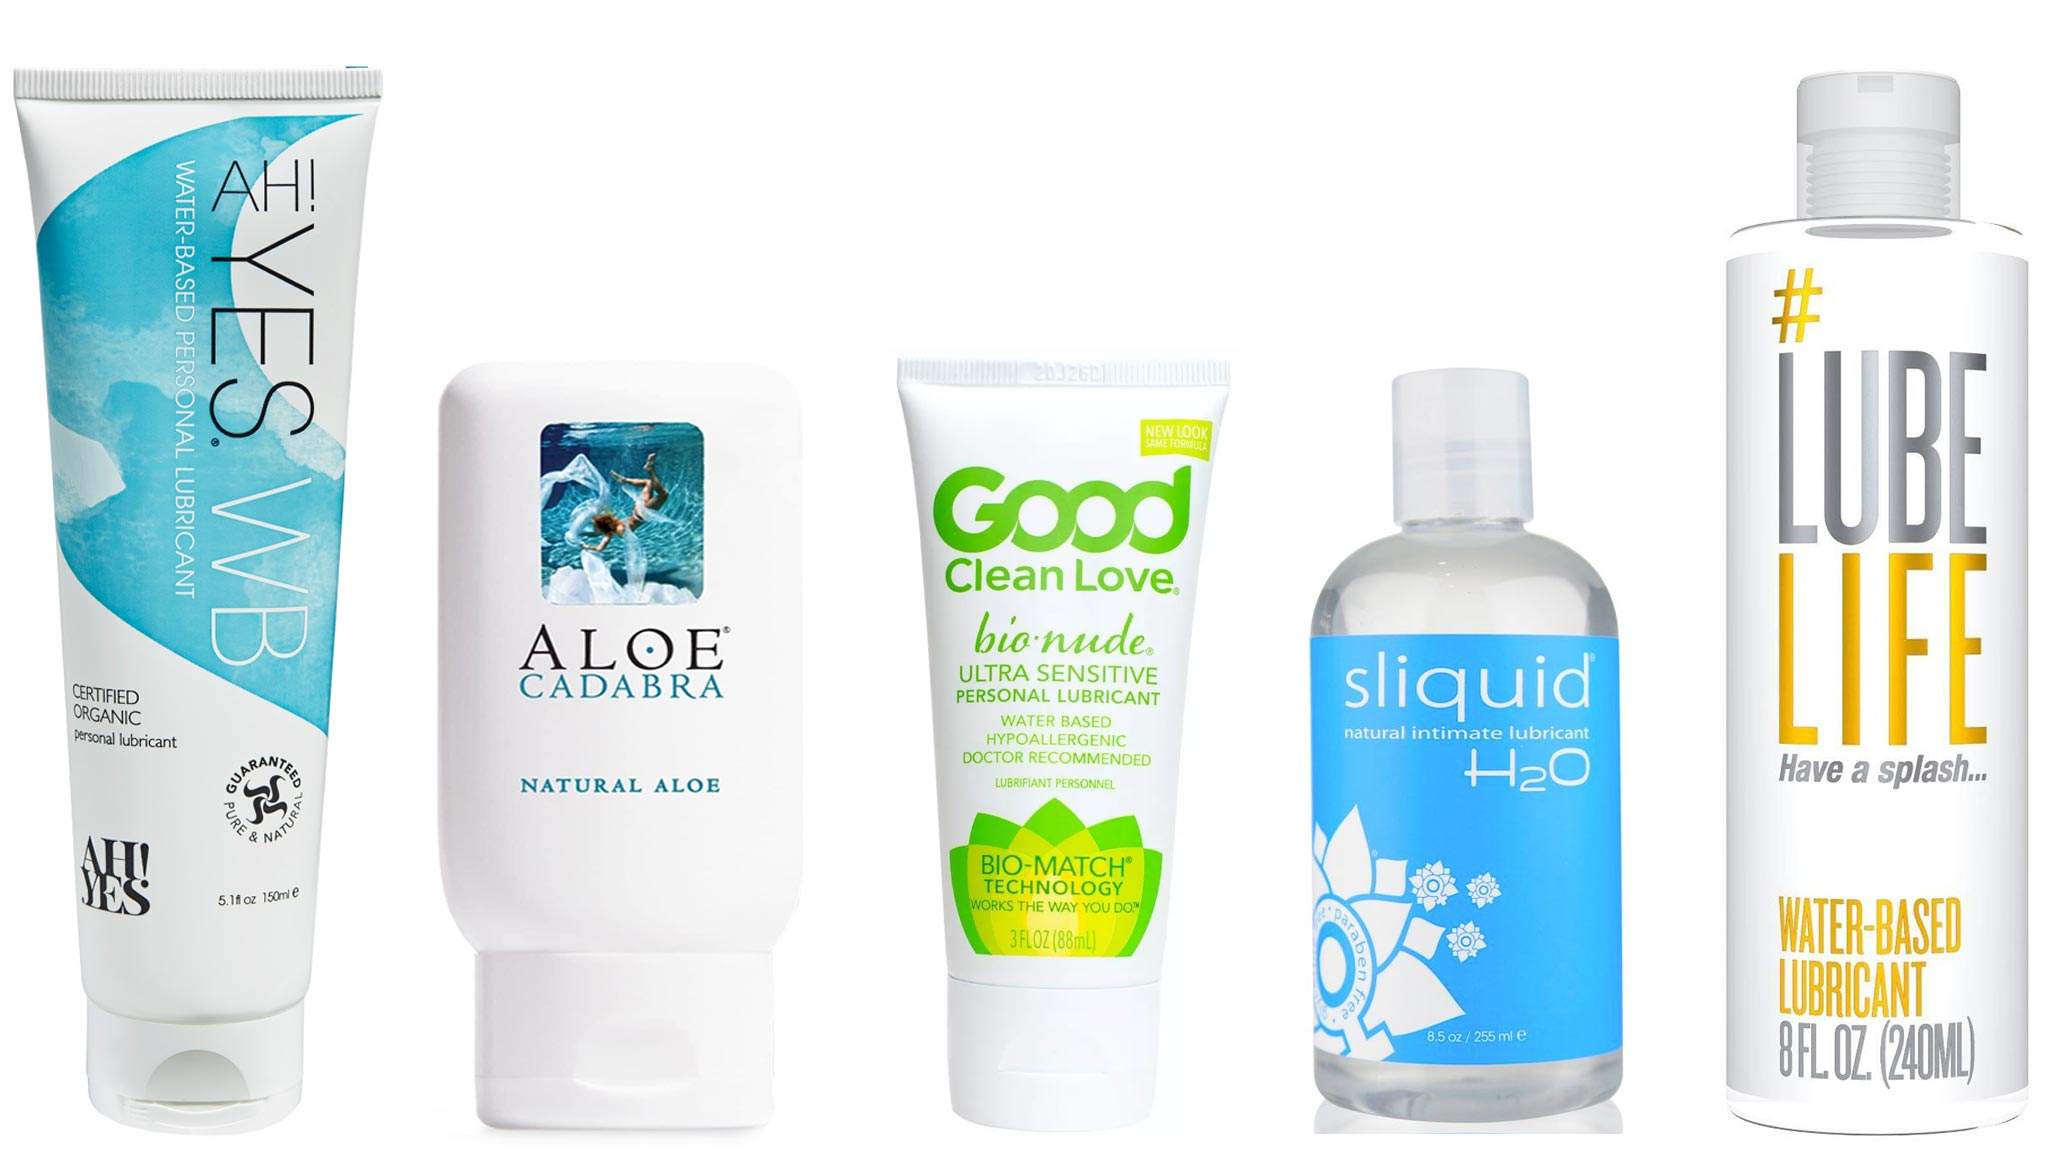 Image Of Five Best Water-Based Personal Lubricants: AH! YES WB, Aloe Cadabra, BioNude Ultra Sensitive, Sliquid Naturals H20, and #LubeLife Water-Based Lubricant